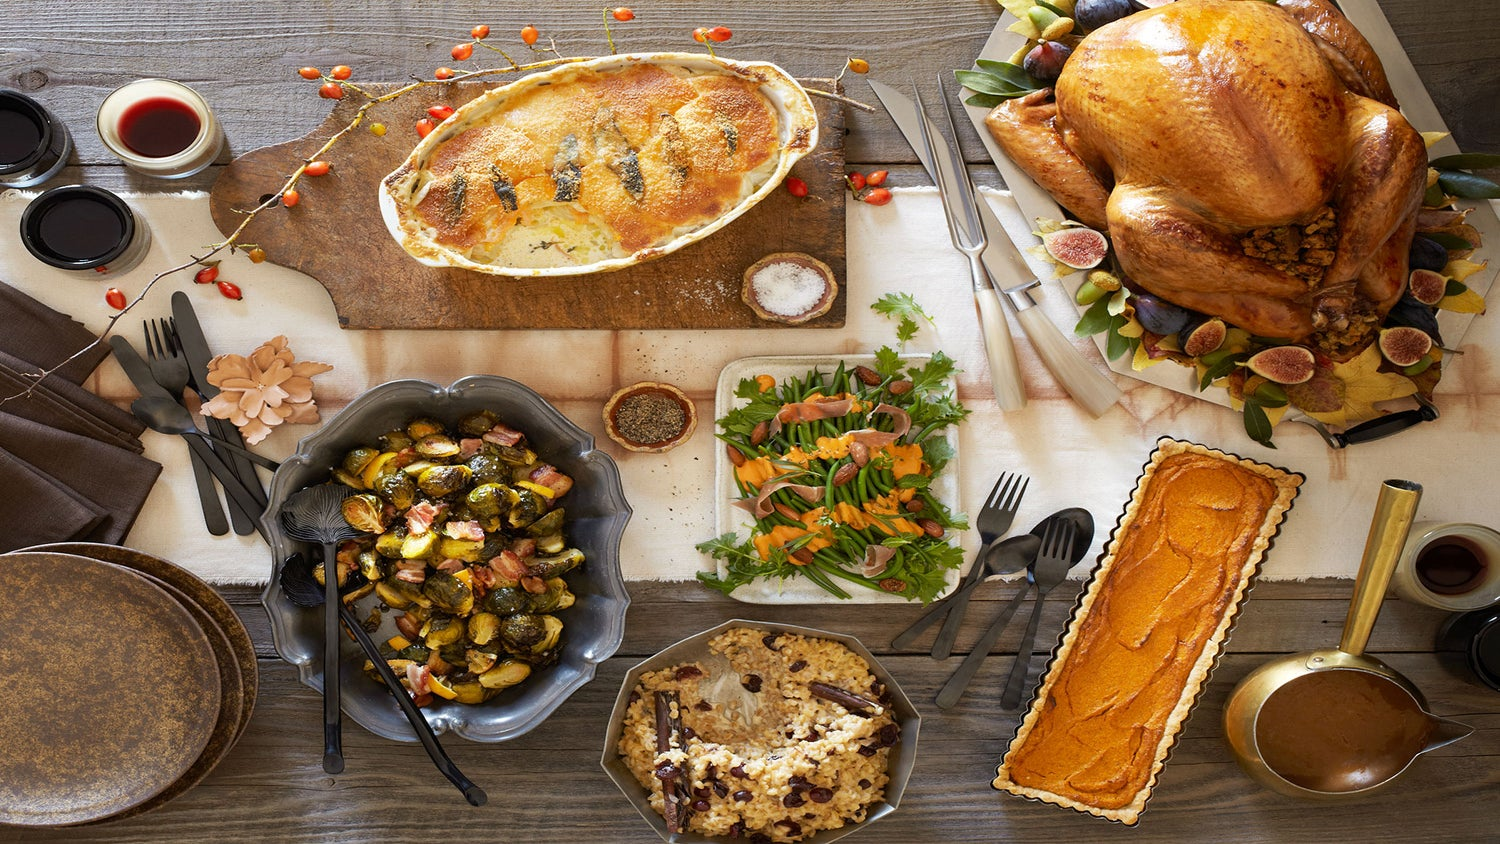 How to Host the Perfect Last-Minute Friendsgiving